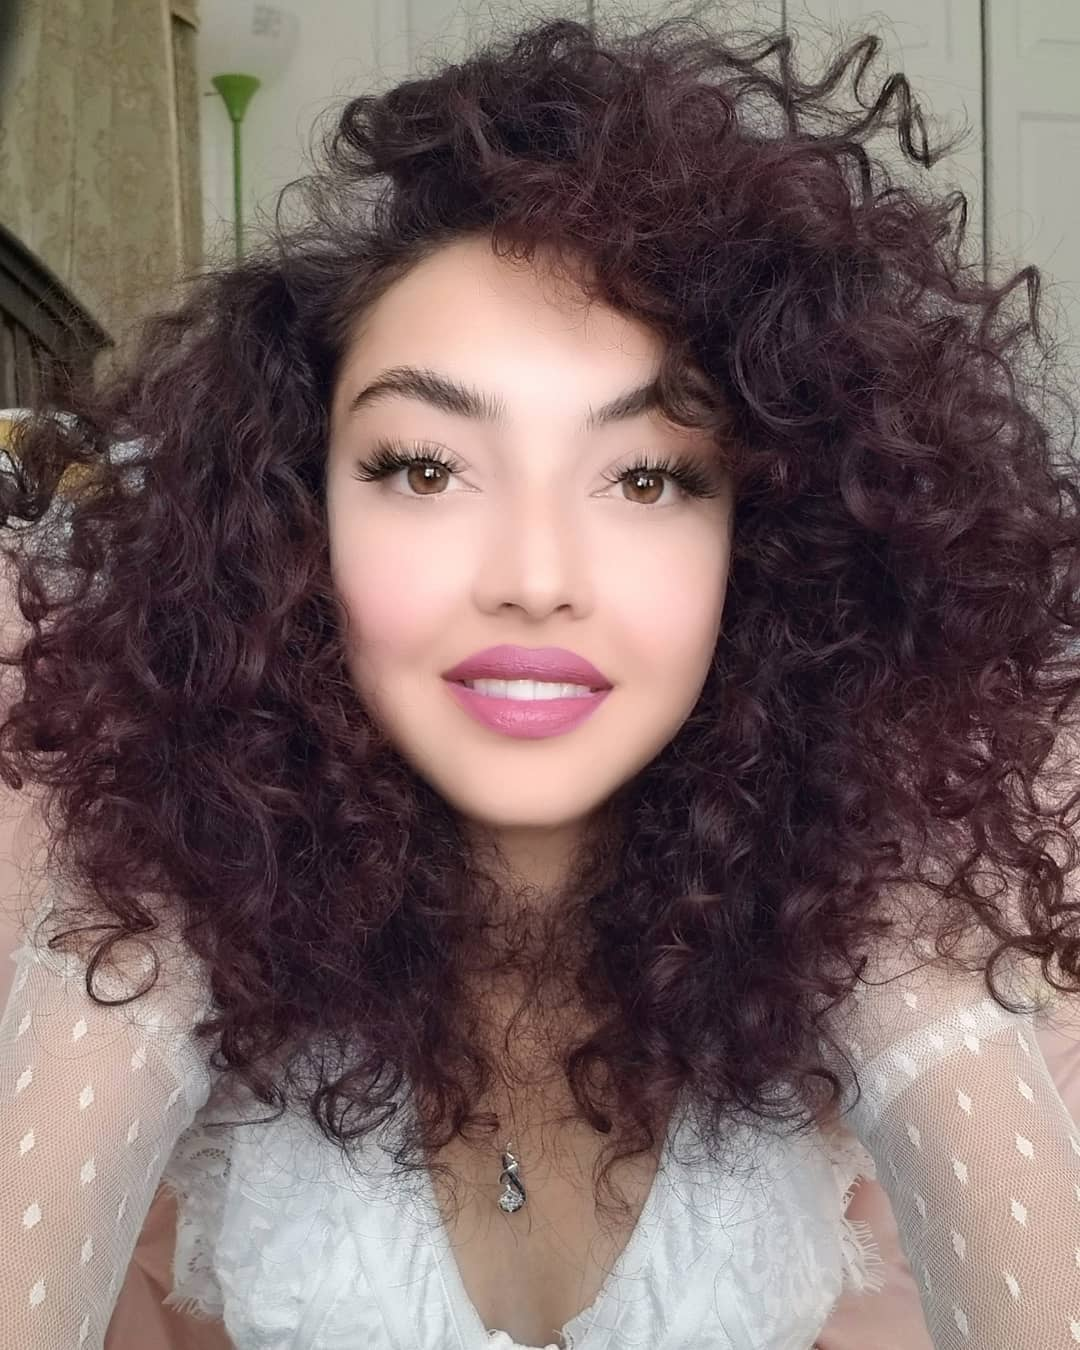 130 short haircuts for oval faces and curly hair » short